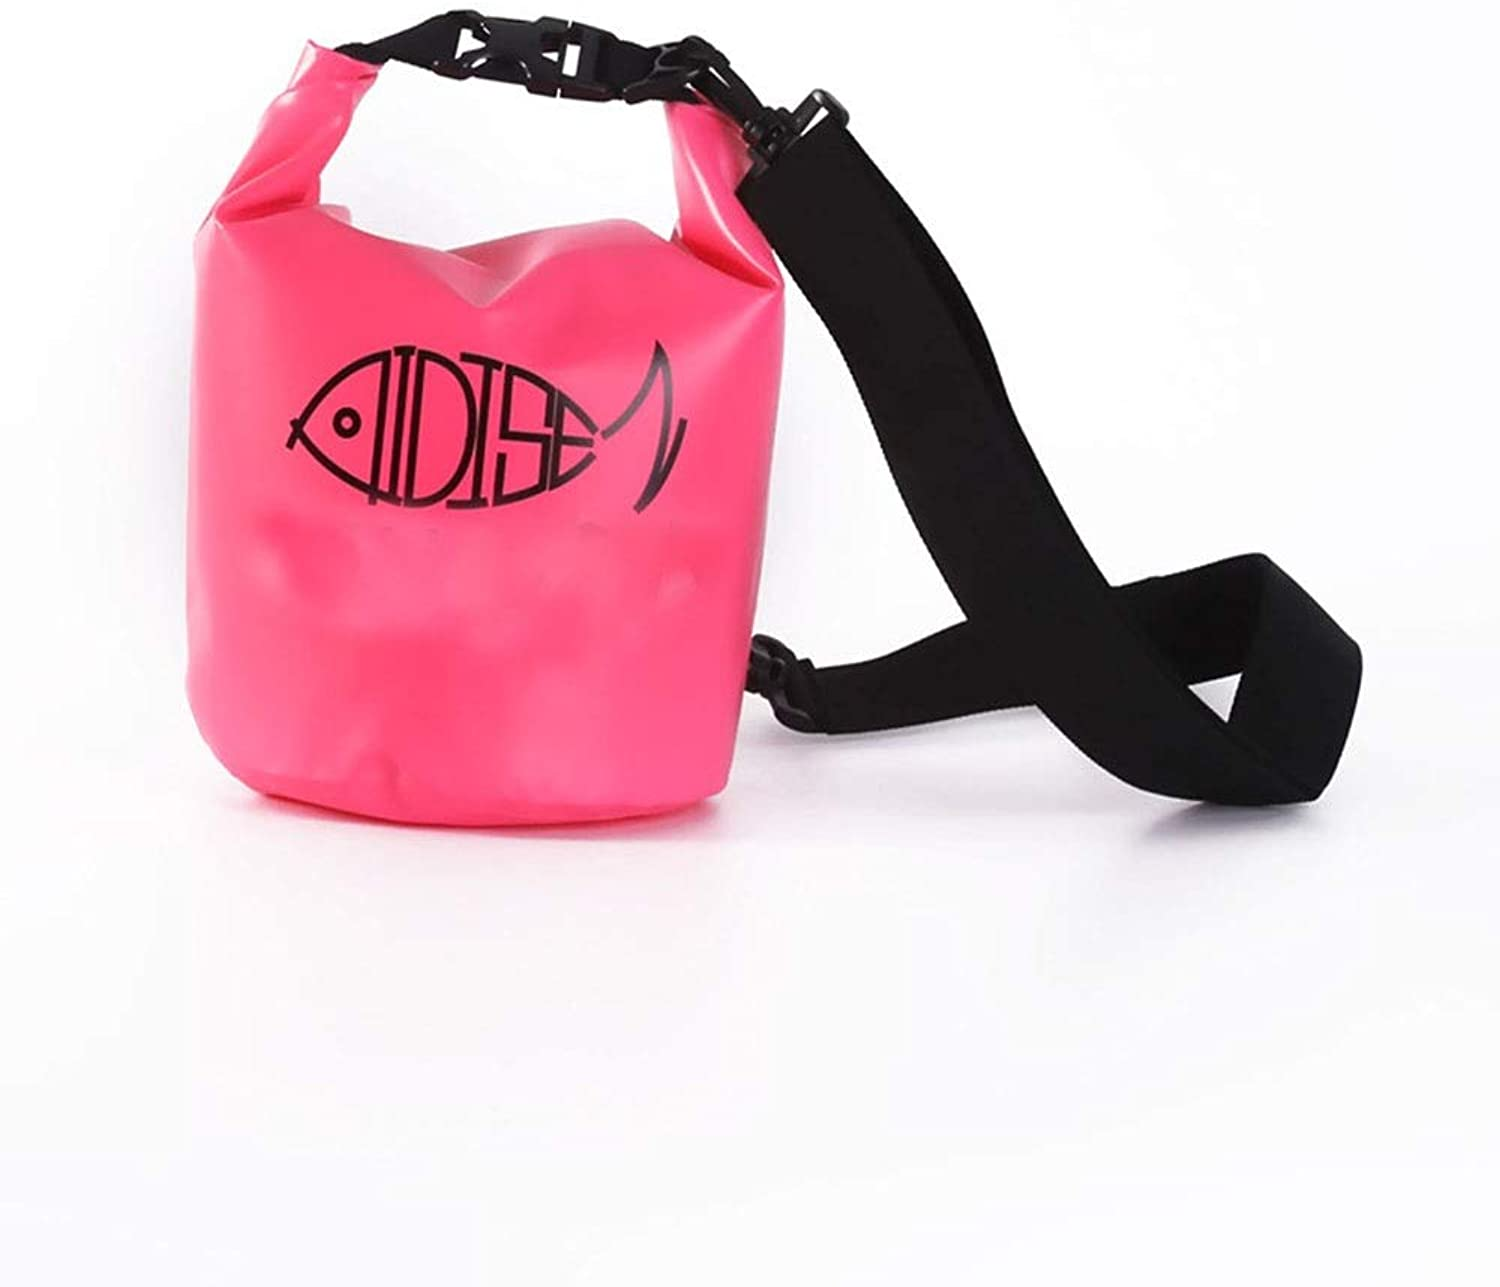 KUVV Durable 5L Outdoor Waterproof Bag Beach Bag Outdoor Products Swimming Diving Bag Waterproof Diving Bag Storage Bag (color   Pink)